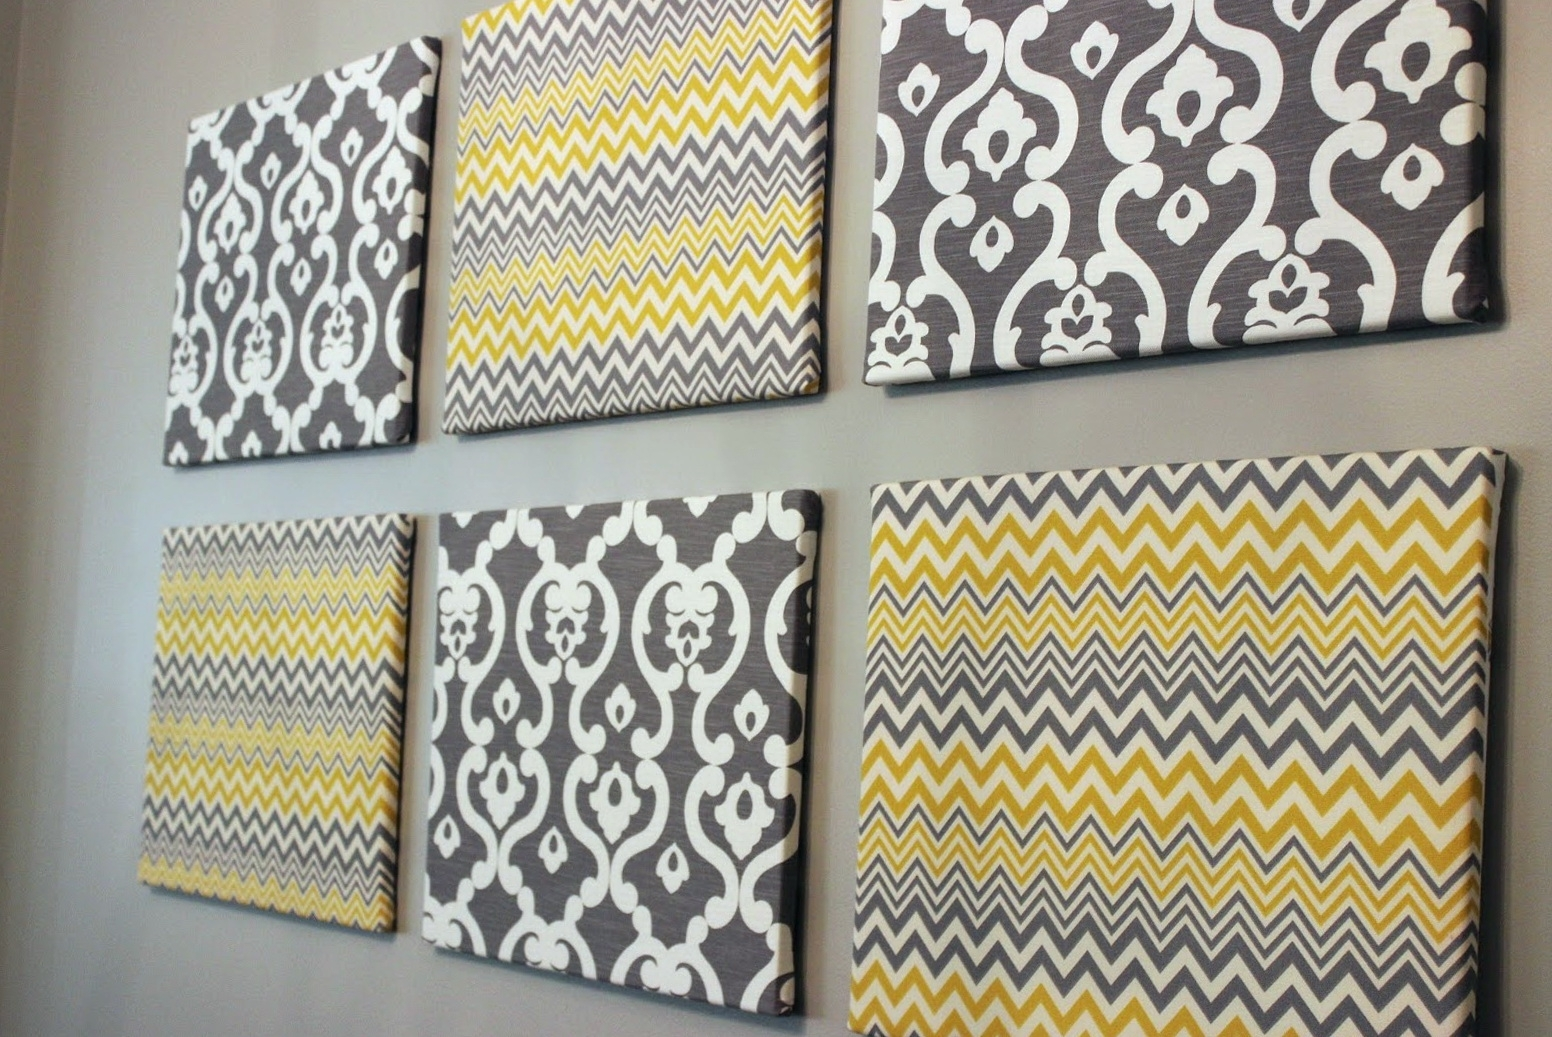 Fabric Wall Art Canvas (View 15 of 15)